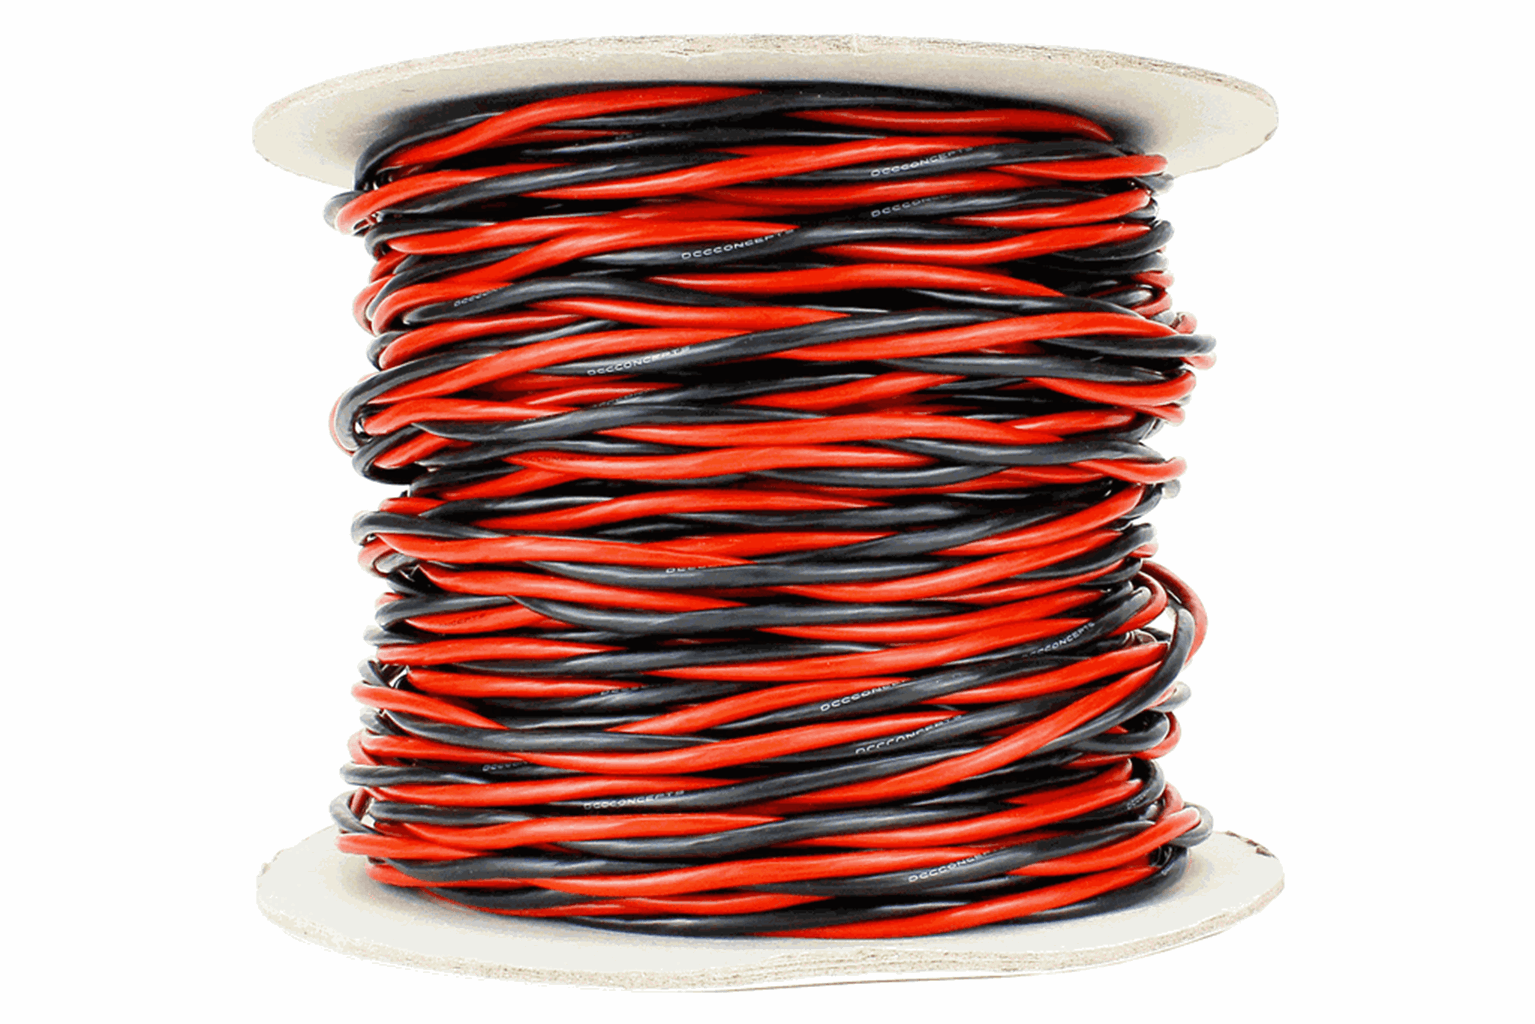 Twisted Bus Wire 50m of 3.5mm (11g) Twin Red/Black